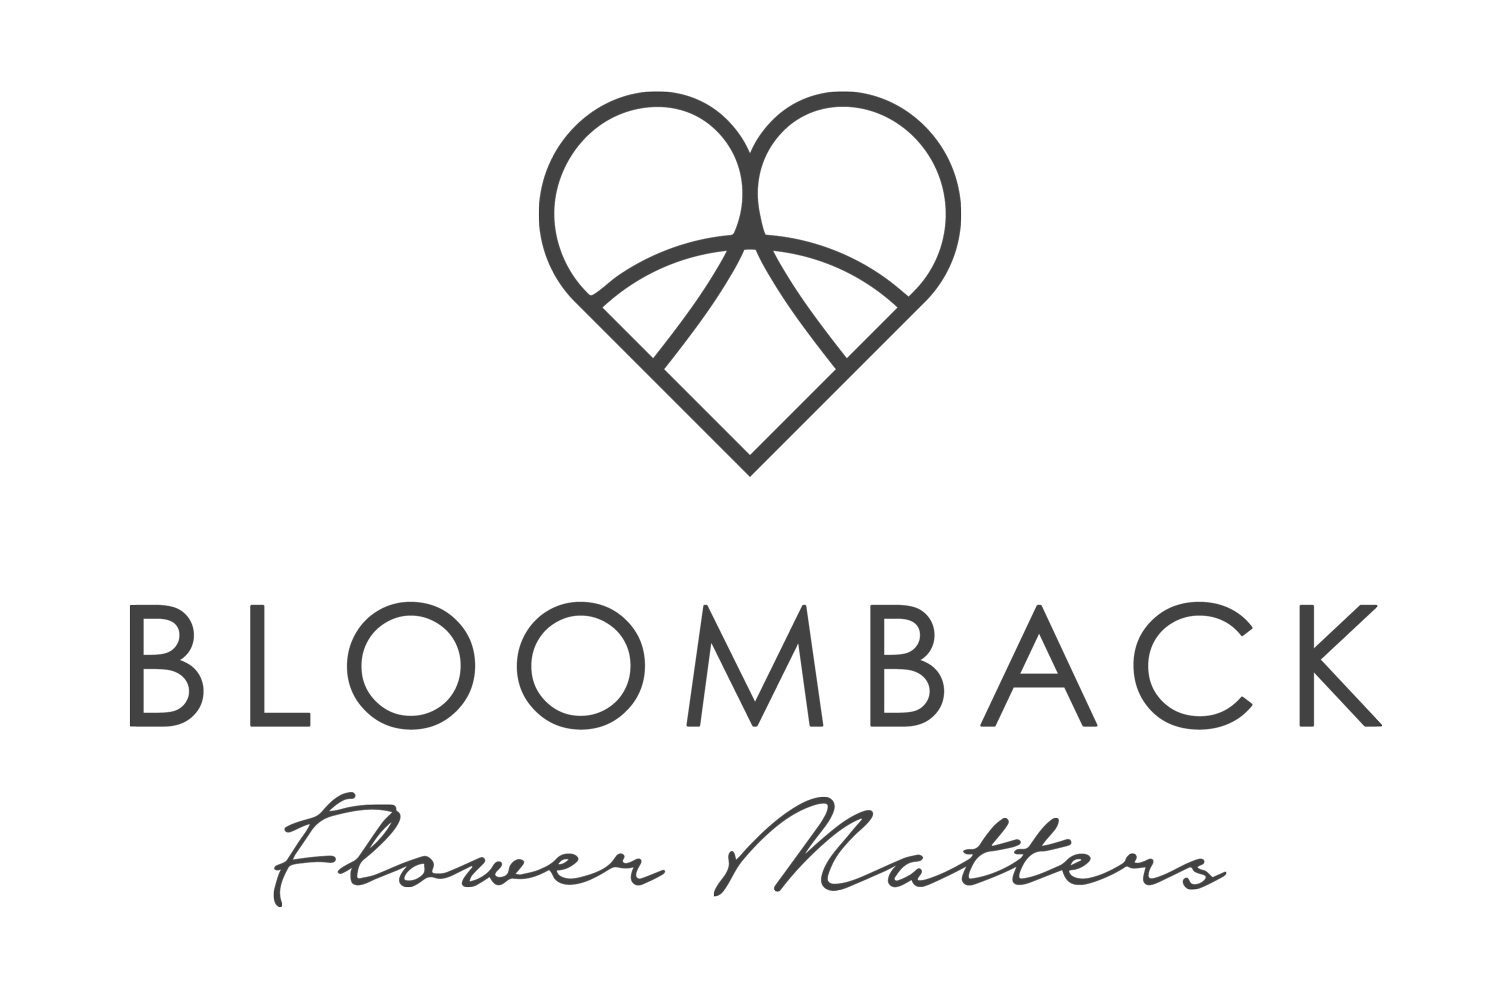 Logo_BloomBack_Heart_RGB-1.png